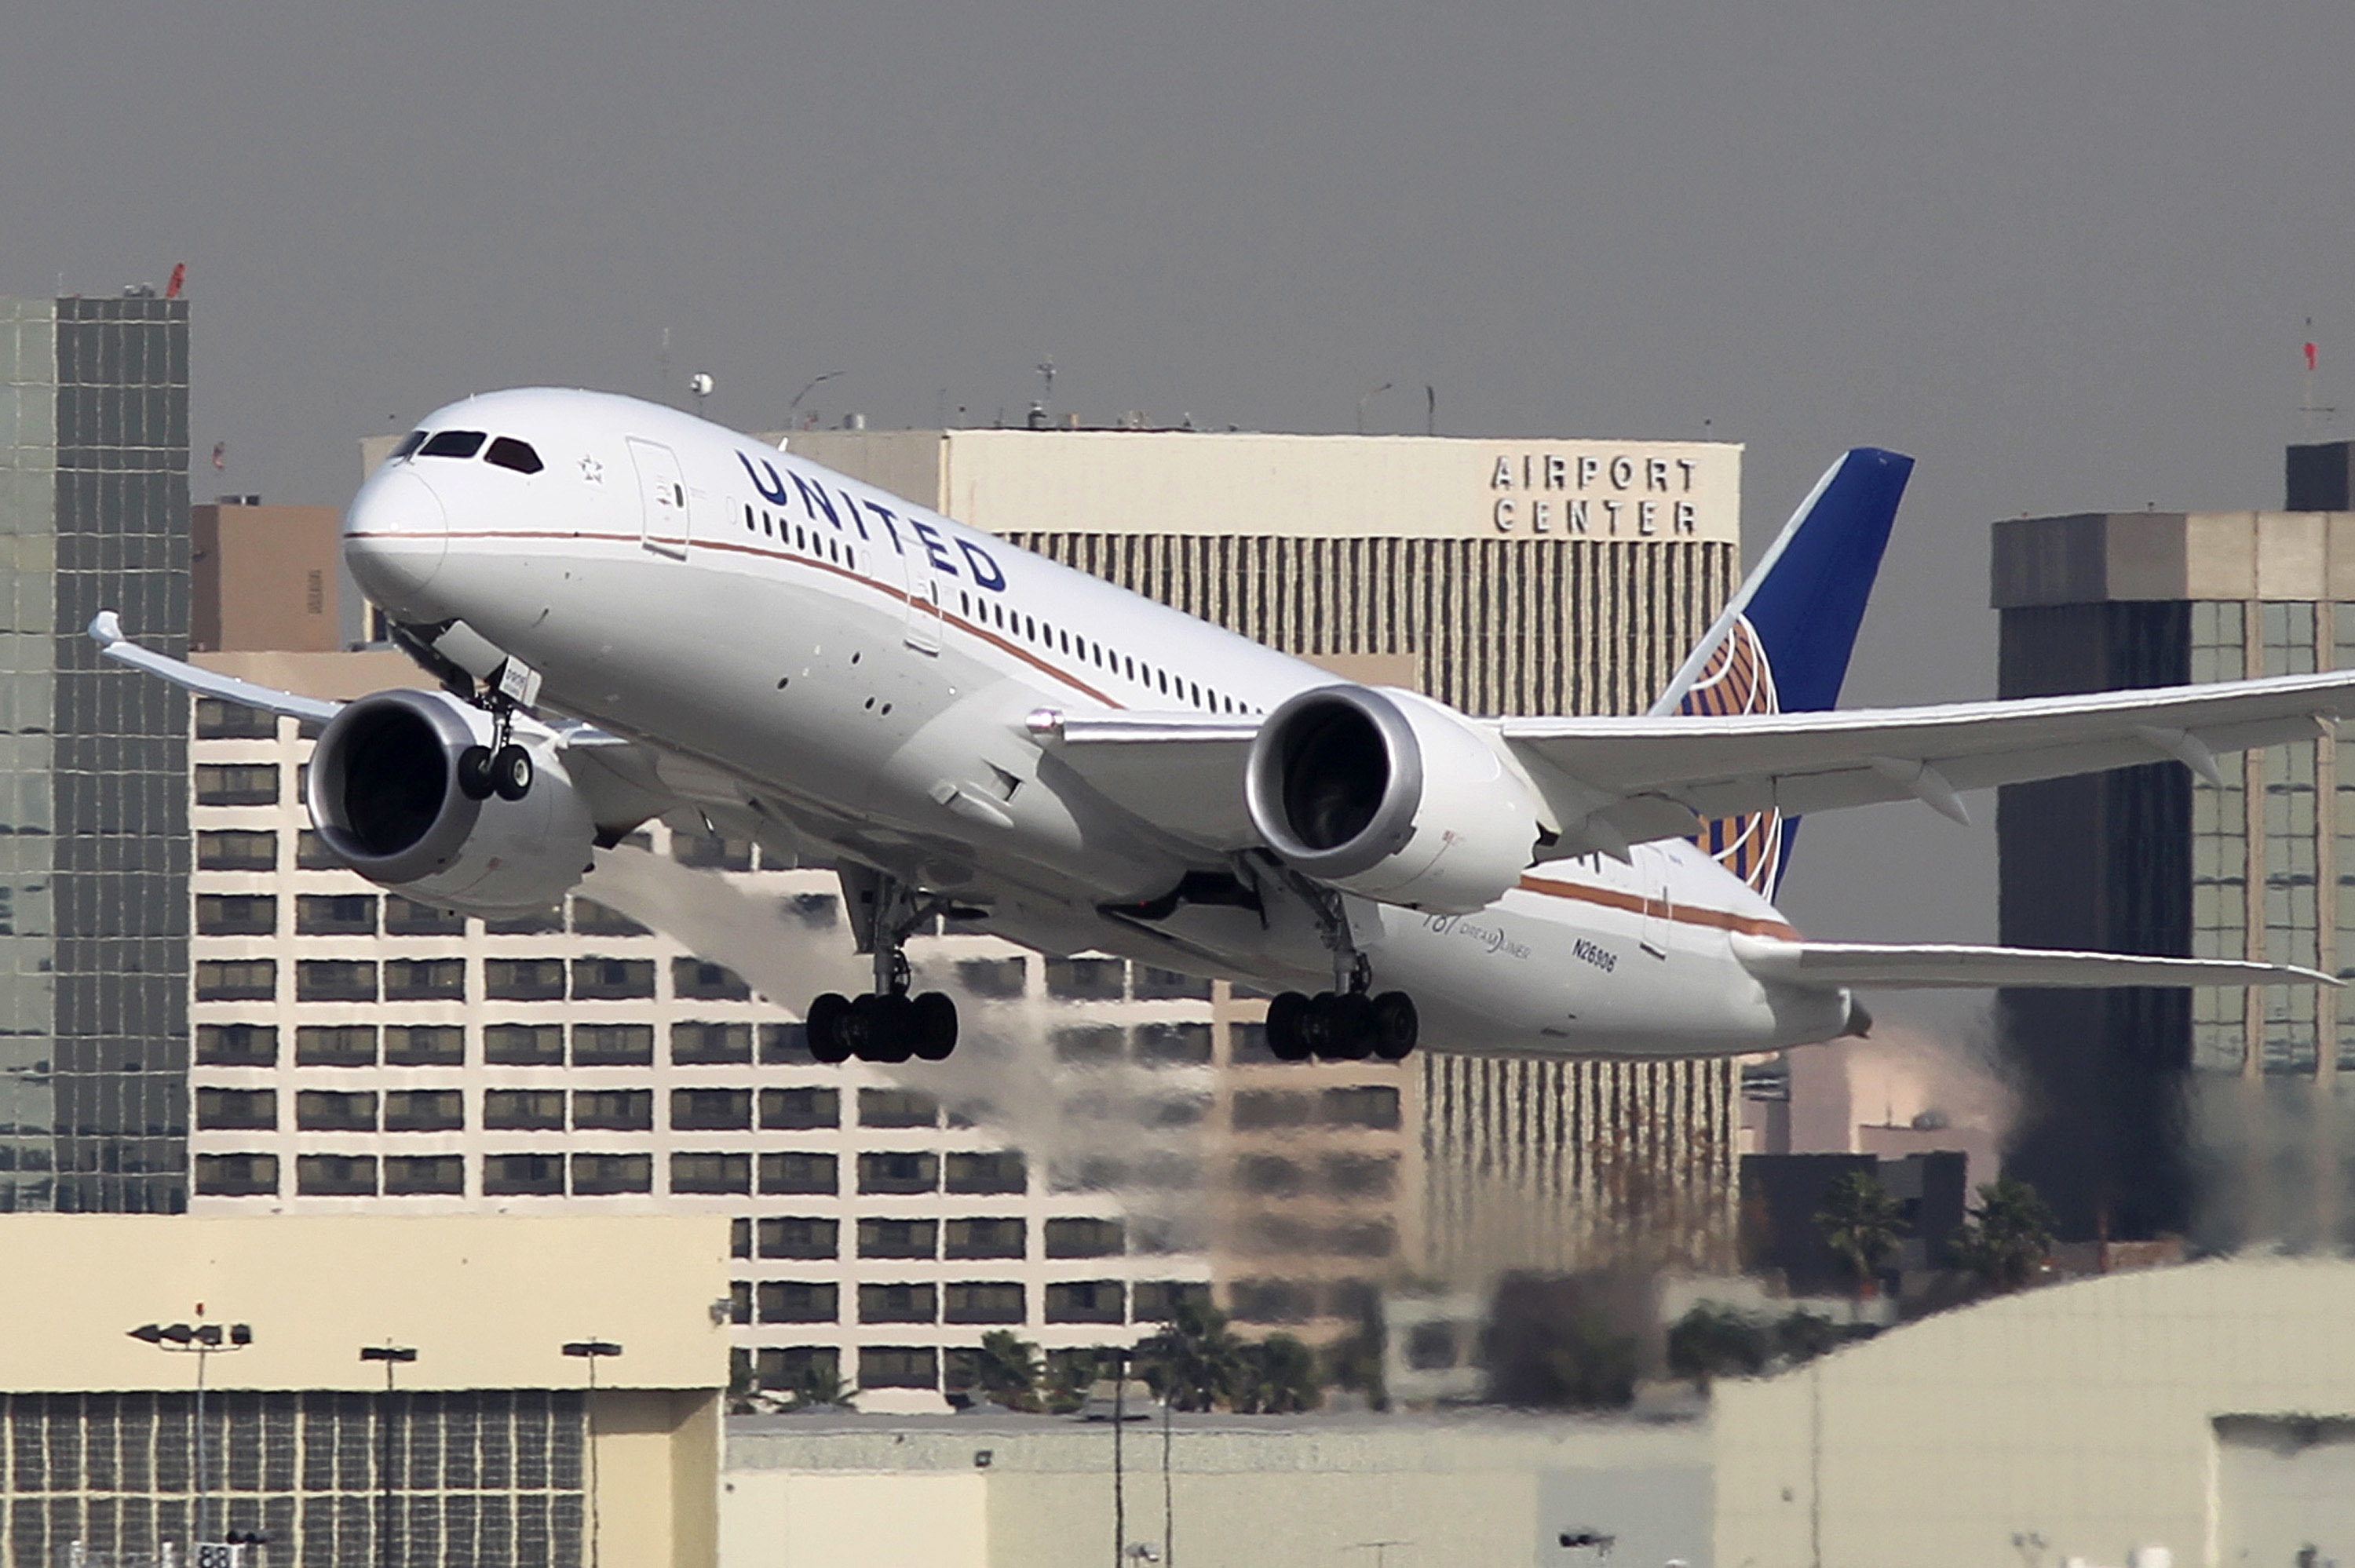 FALLING FOUL: United Airlines stirred up controversy when it stopped two female passengers in leggings from boarding a flight.